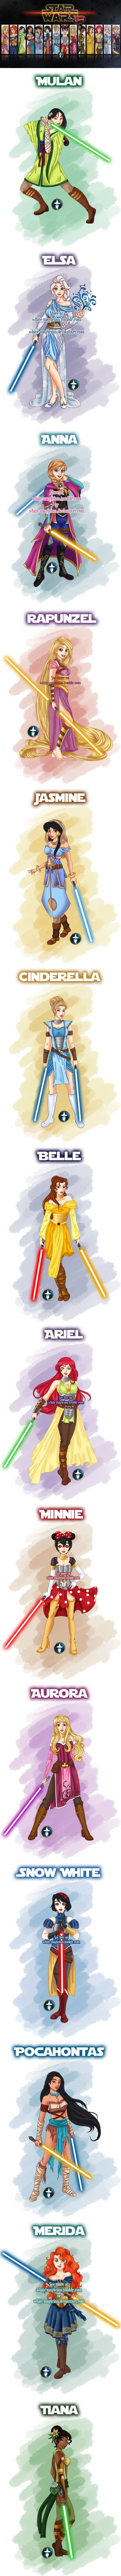 What if Disney Princesses were Star Wars Jedis (by White-Magician)